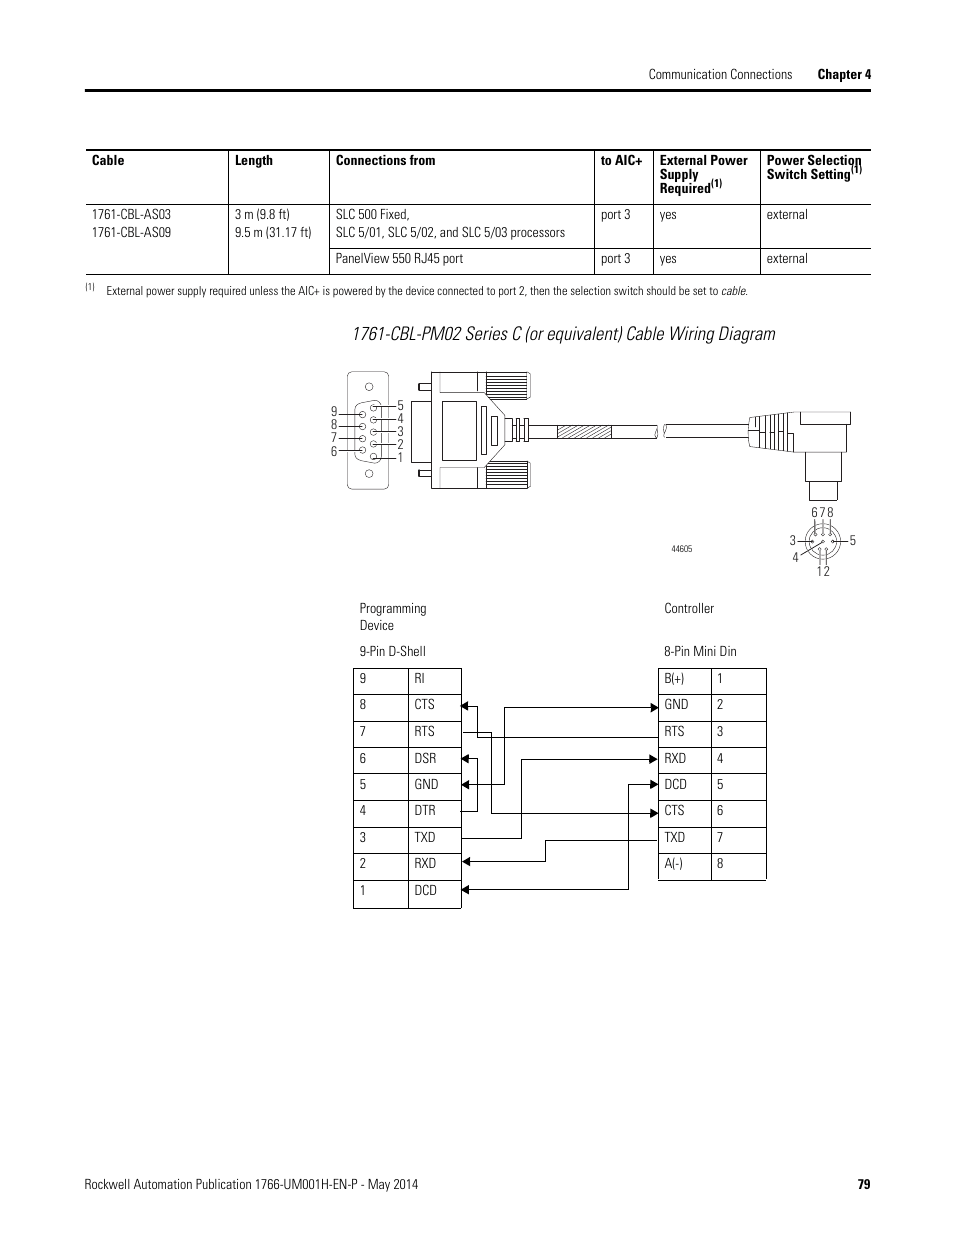 medium resolution of rockwell automation 1766 lxxxx micrologix 1400 programmable controllers user manual user manual page 93 406 also for 1766 l32xxx micrologix 1400